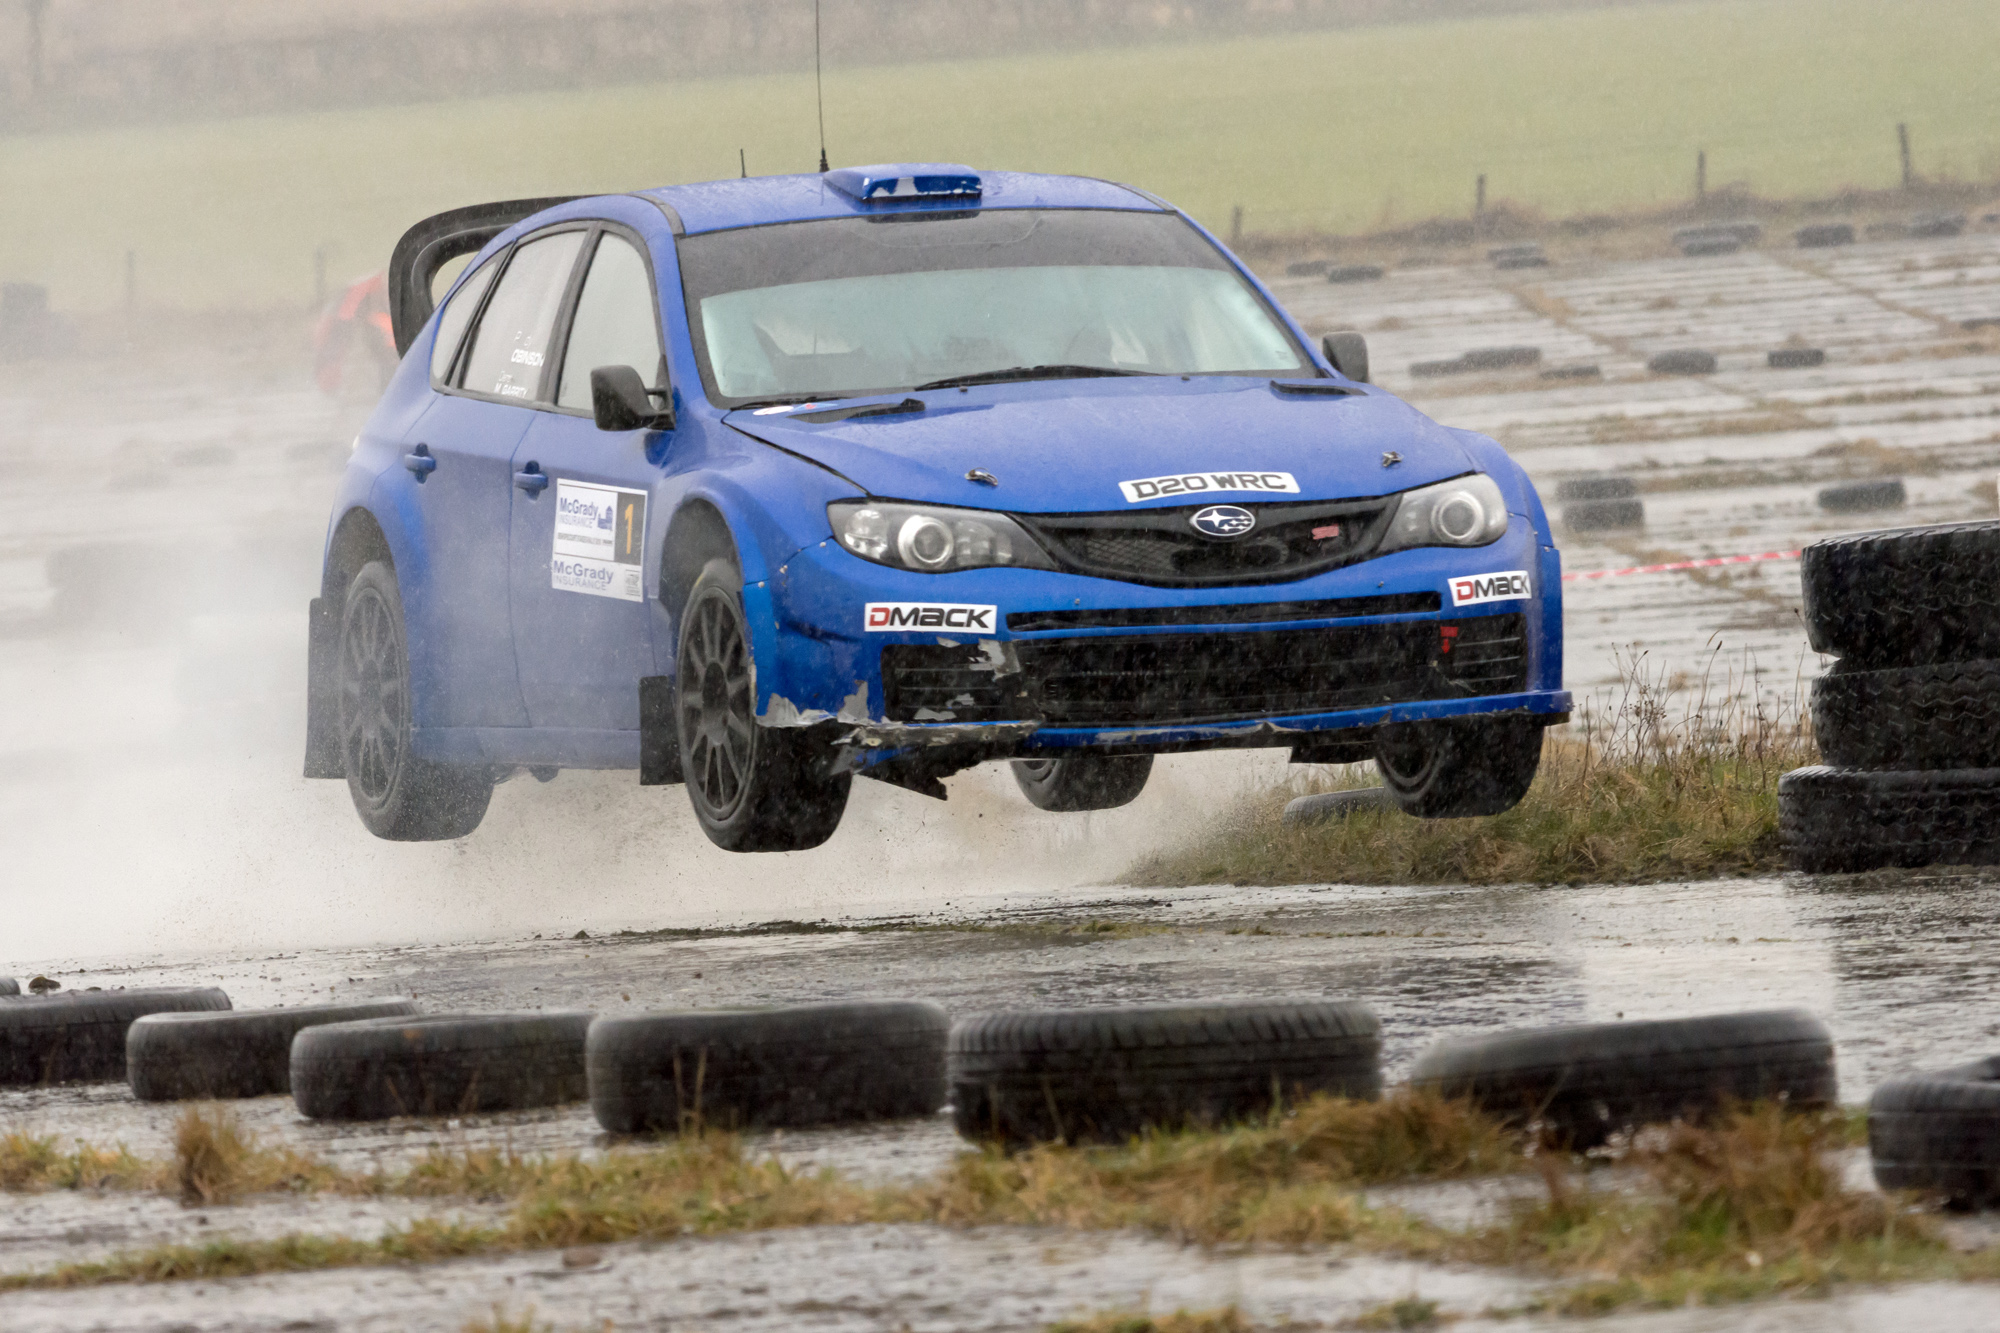 Derek McGarrity in full flight at the Bishopscourt Stages event, round 1 of the Mc Grady Insurance MSA ANICC Stage Rally Championship 2018. Credit: Bill Swann/i2i photography